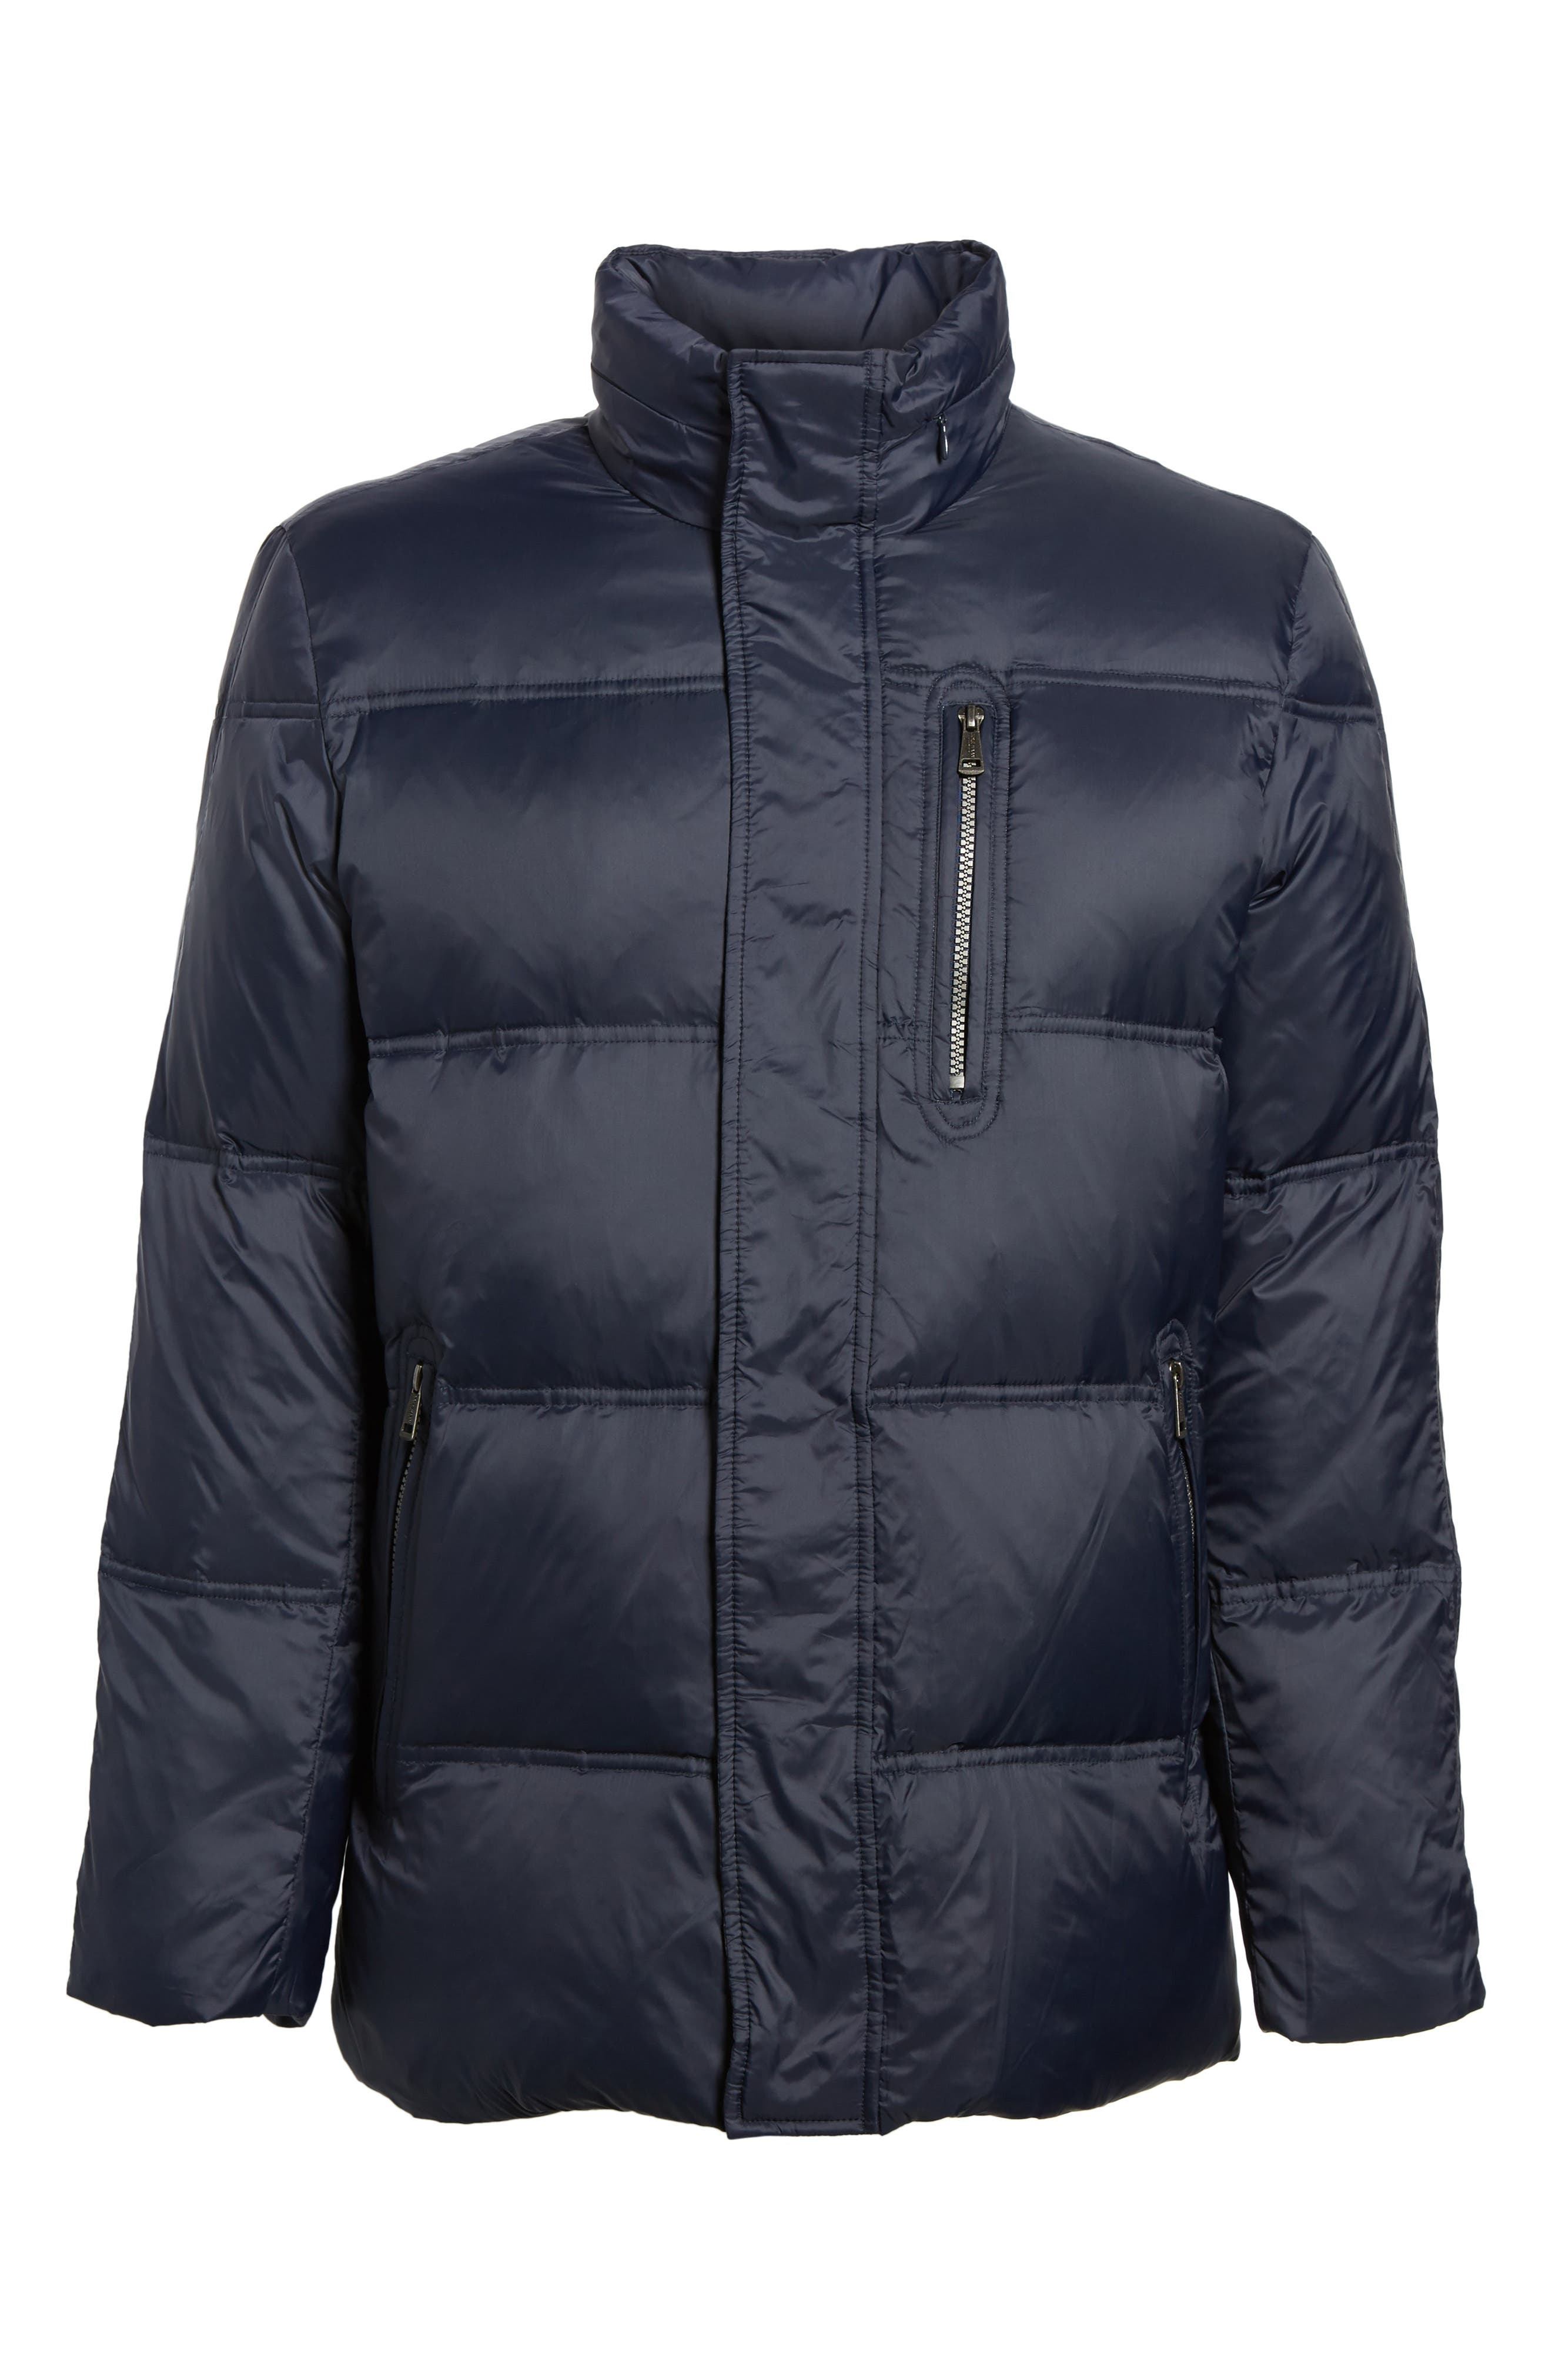 Quilted Jacket with Convertible Neck Pillow,                             Alternate thumbnail 5, color,                             NAVY